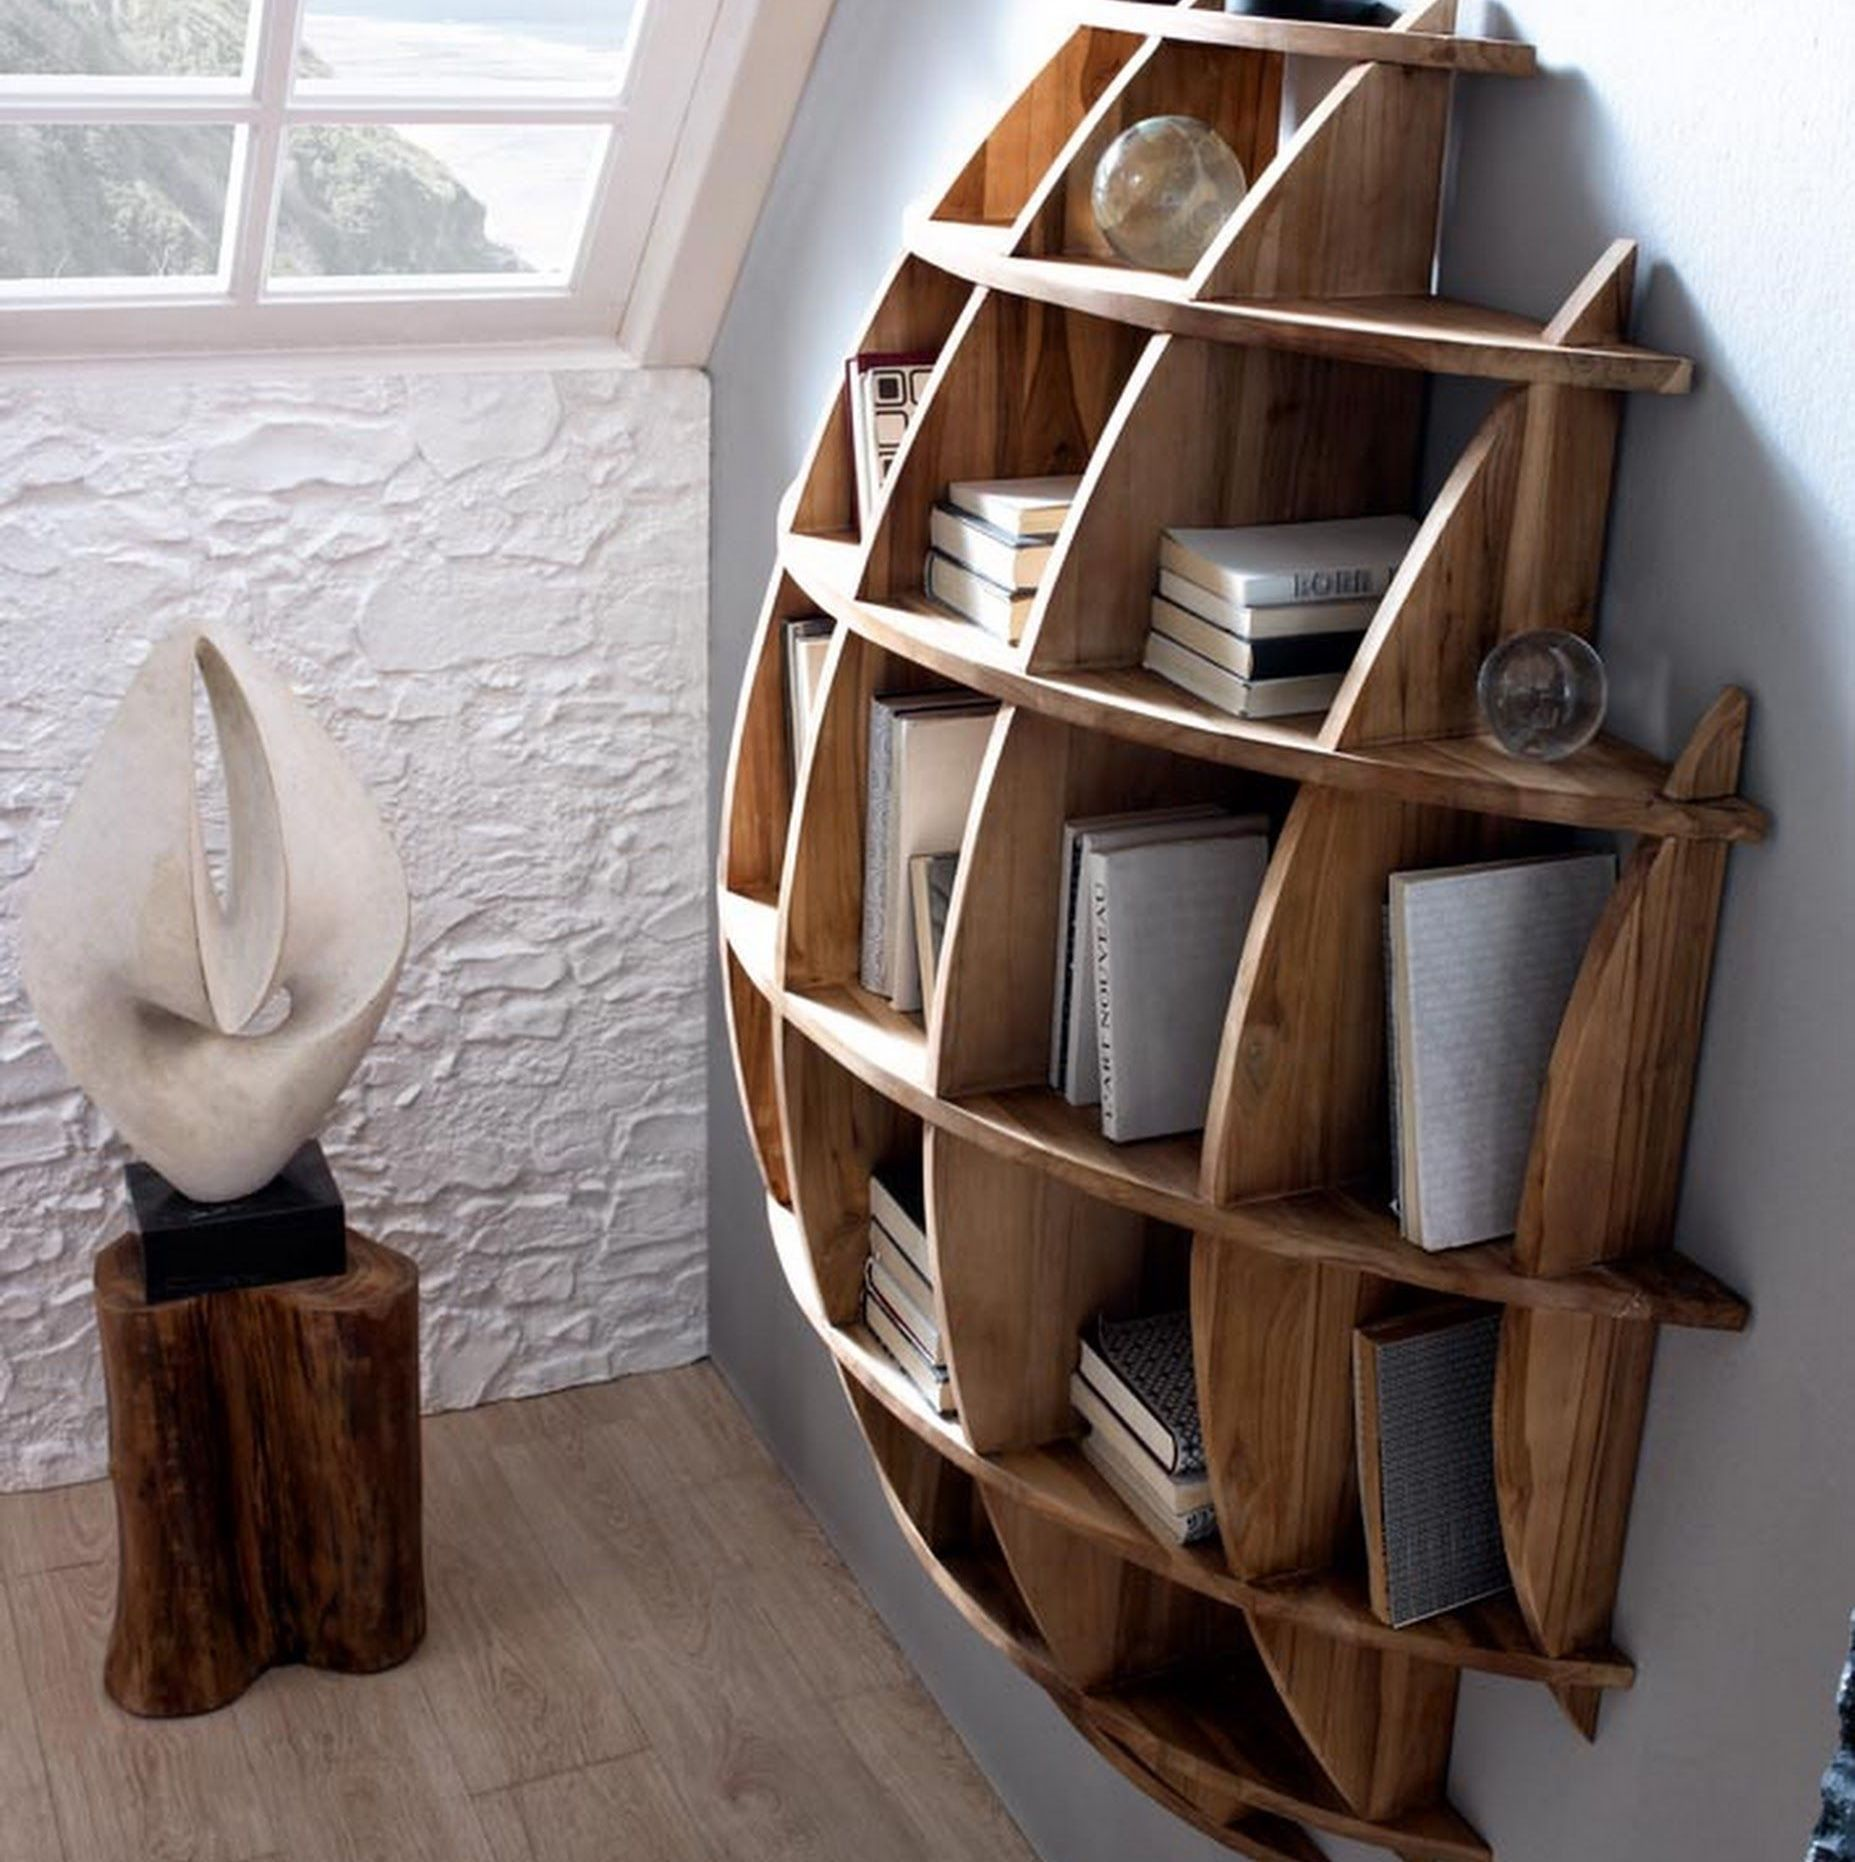 Top 10 Easy Woodworking Projects to Make and Sell Wood